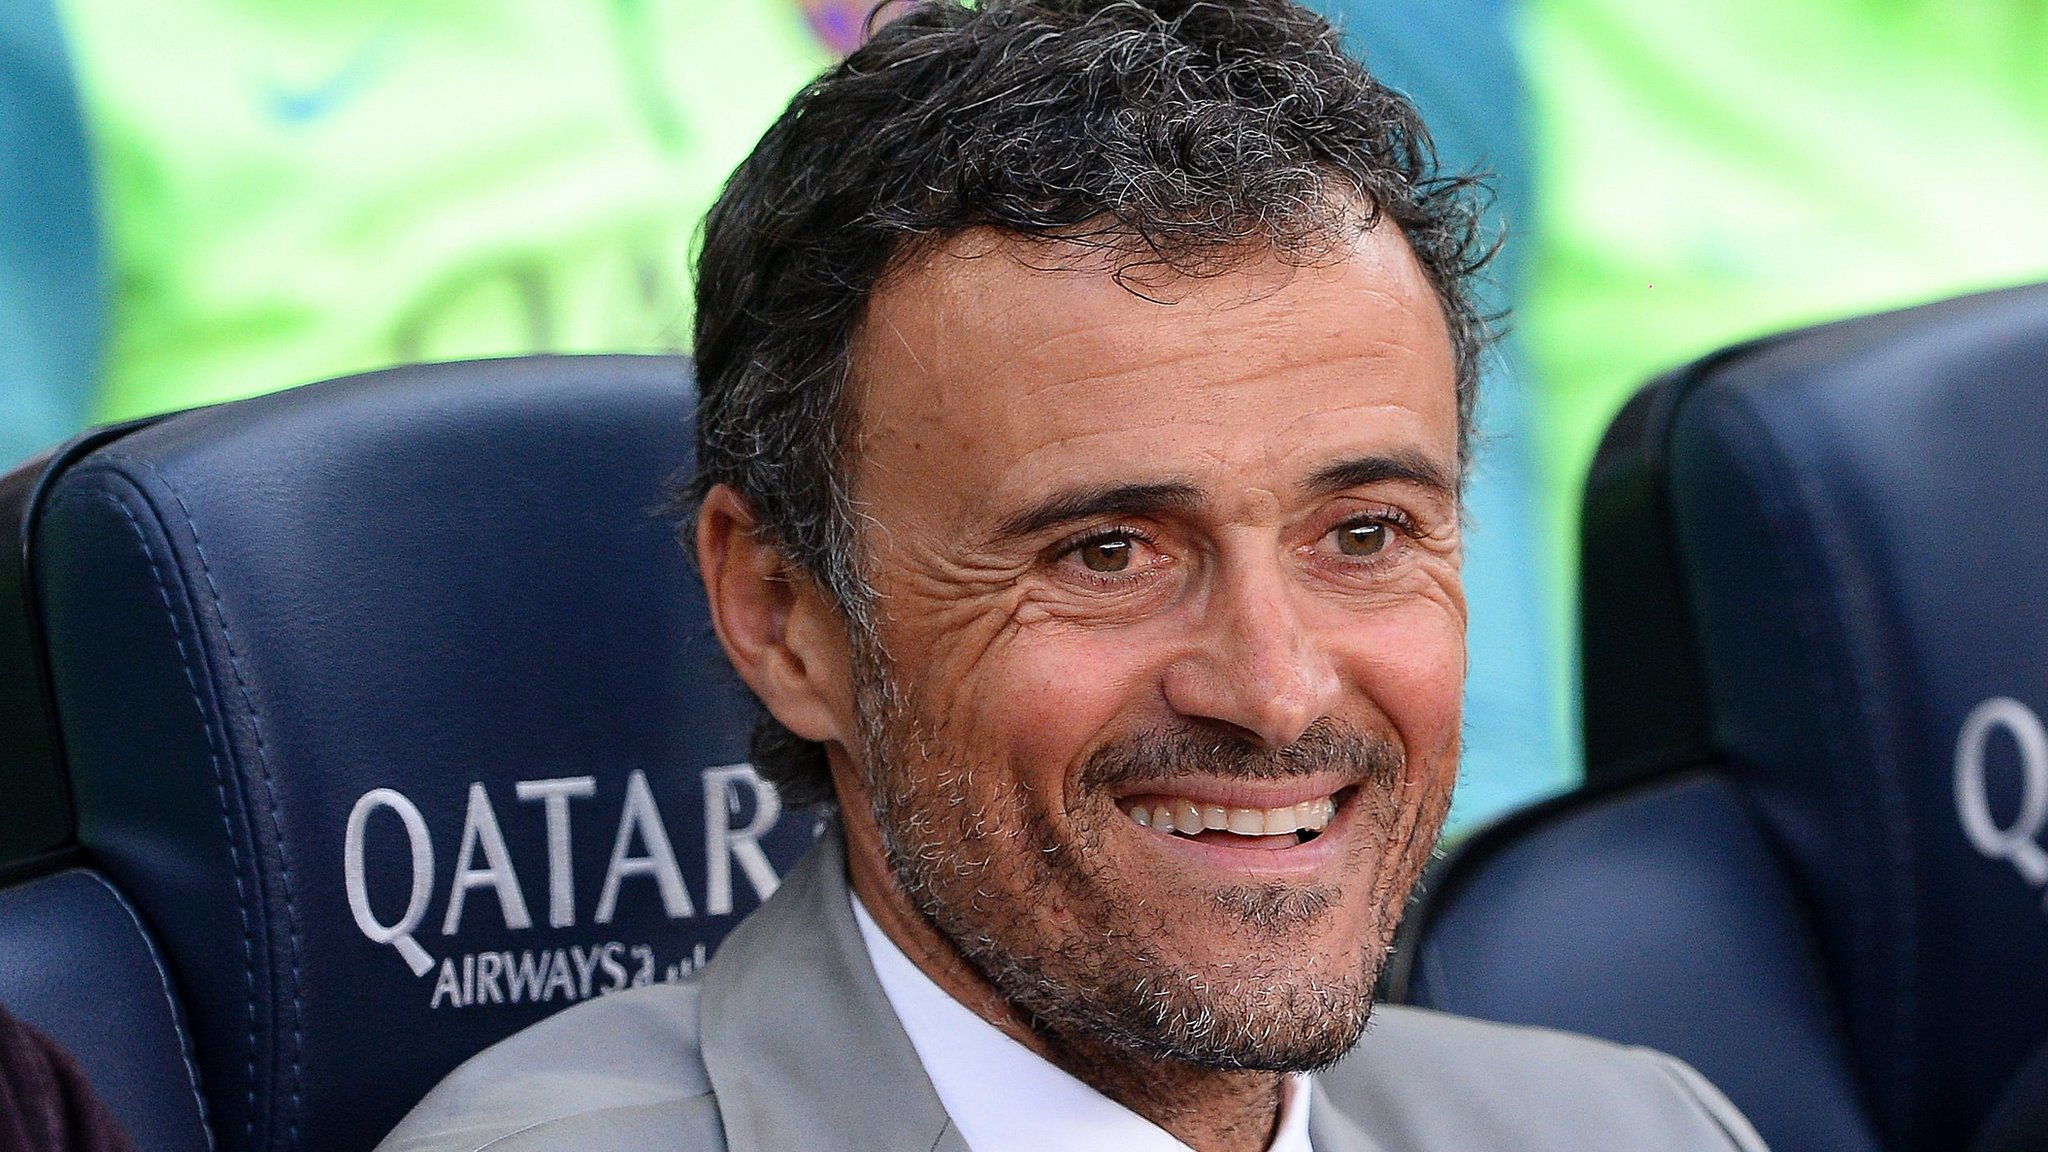 Luis Enrique holds off on Chelsea deal to see if Arsenal call - gossip